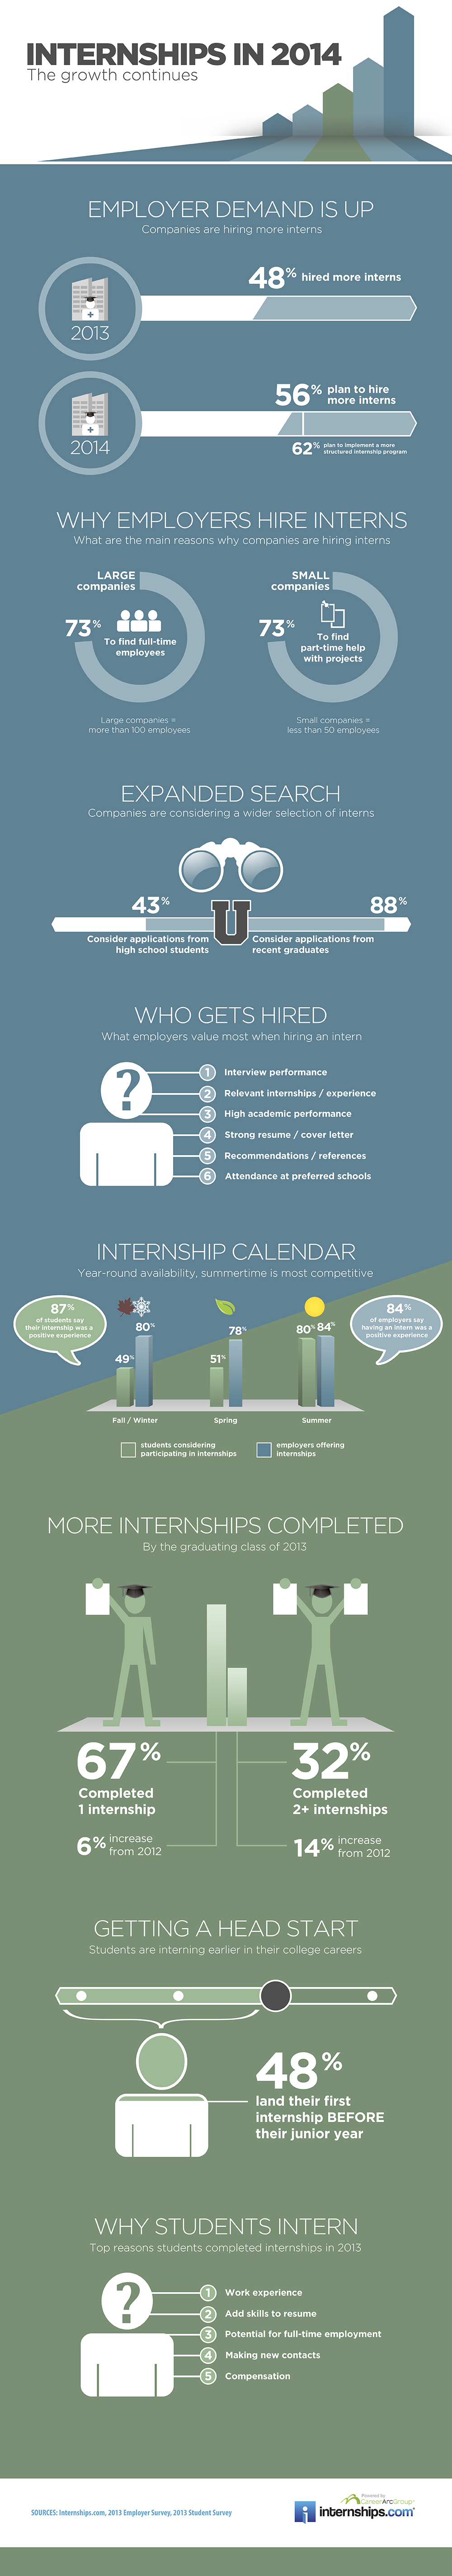 Internships.com Infographic - Internships in 2014, the growth continues